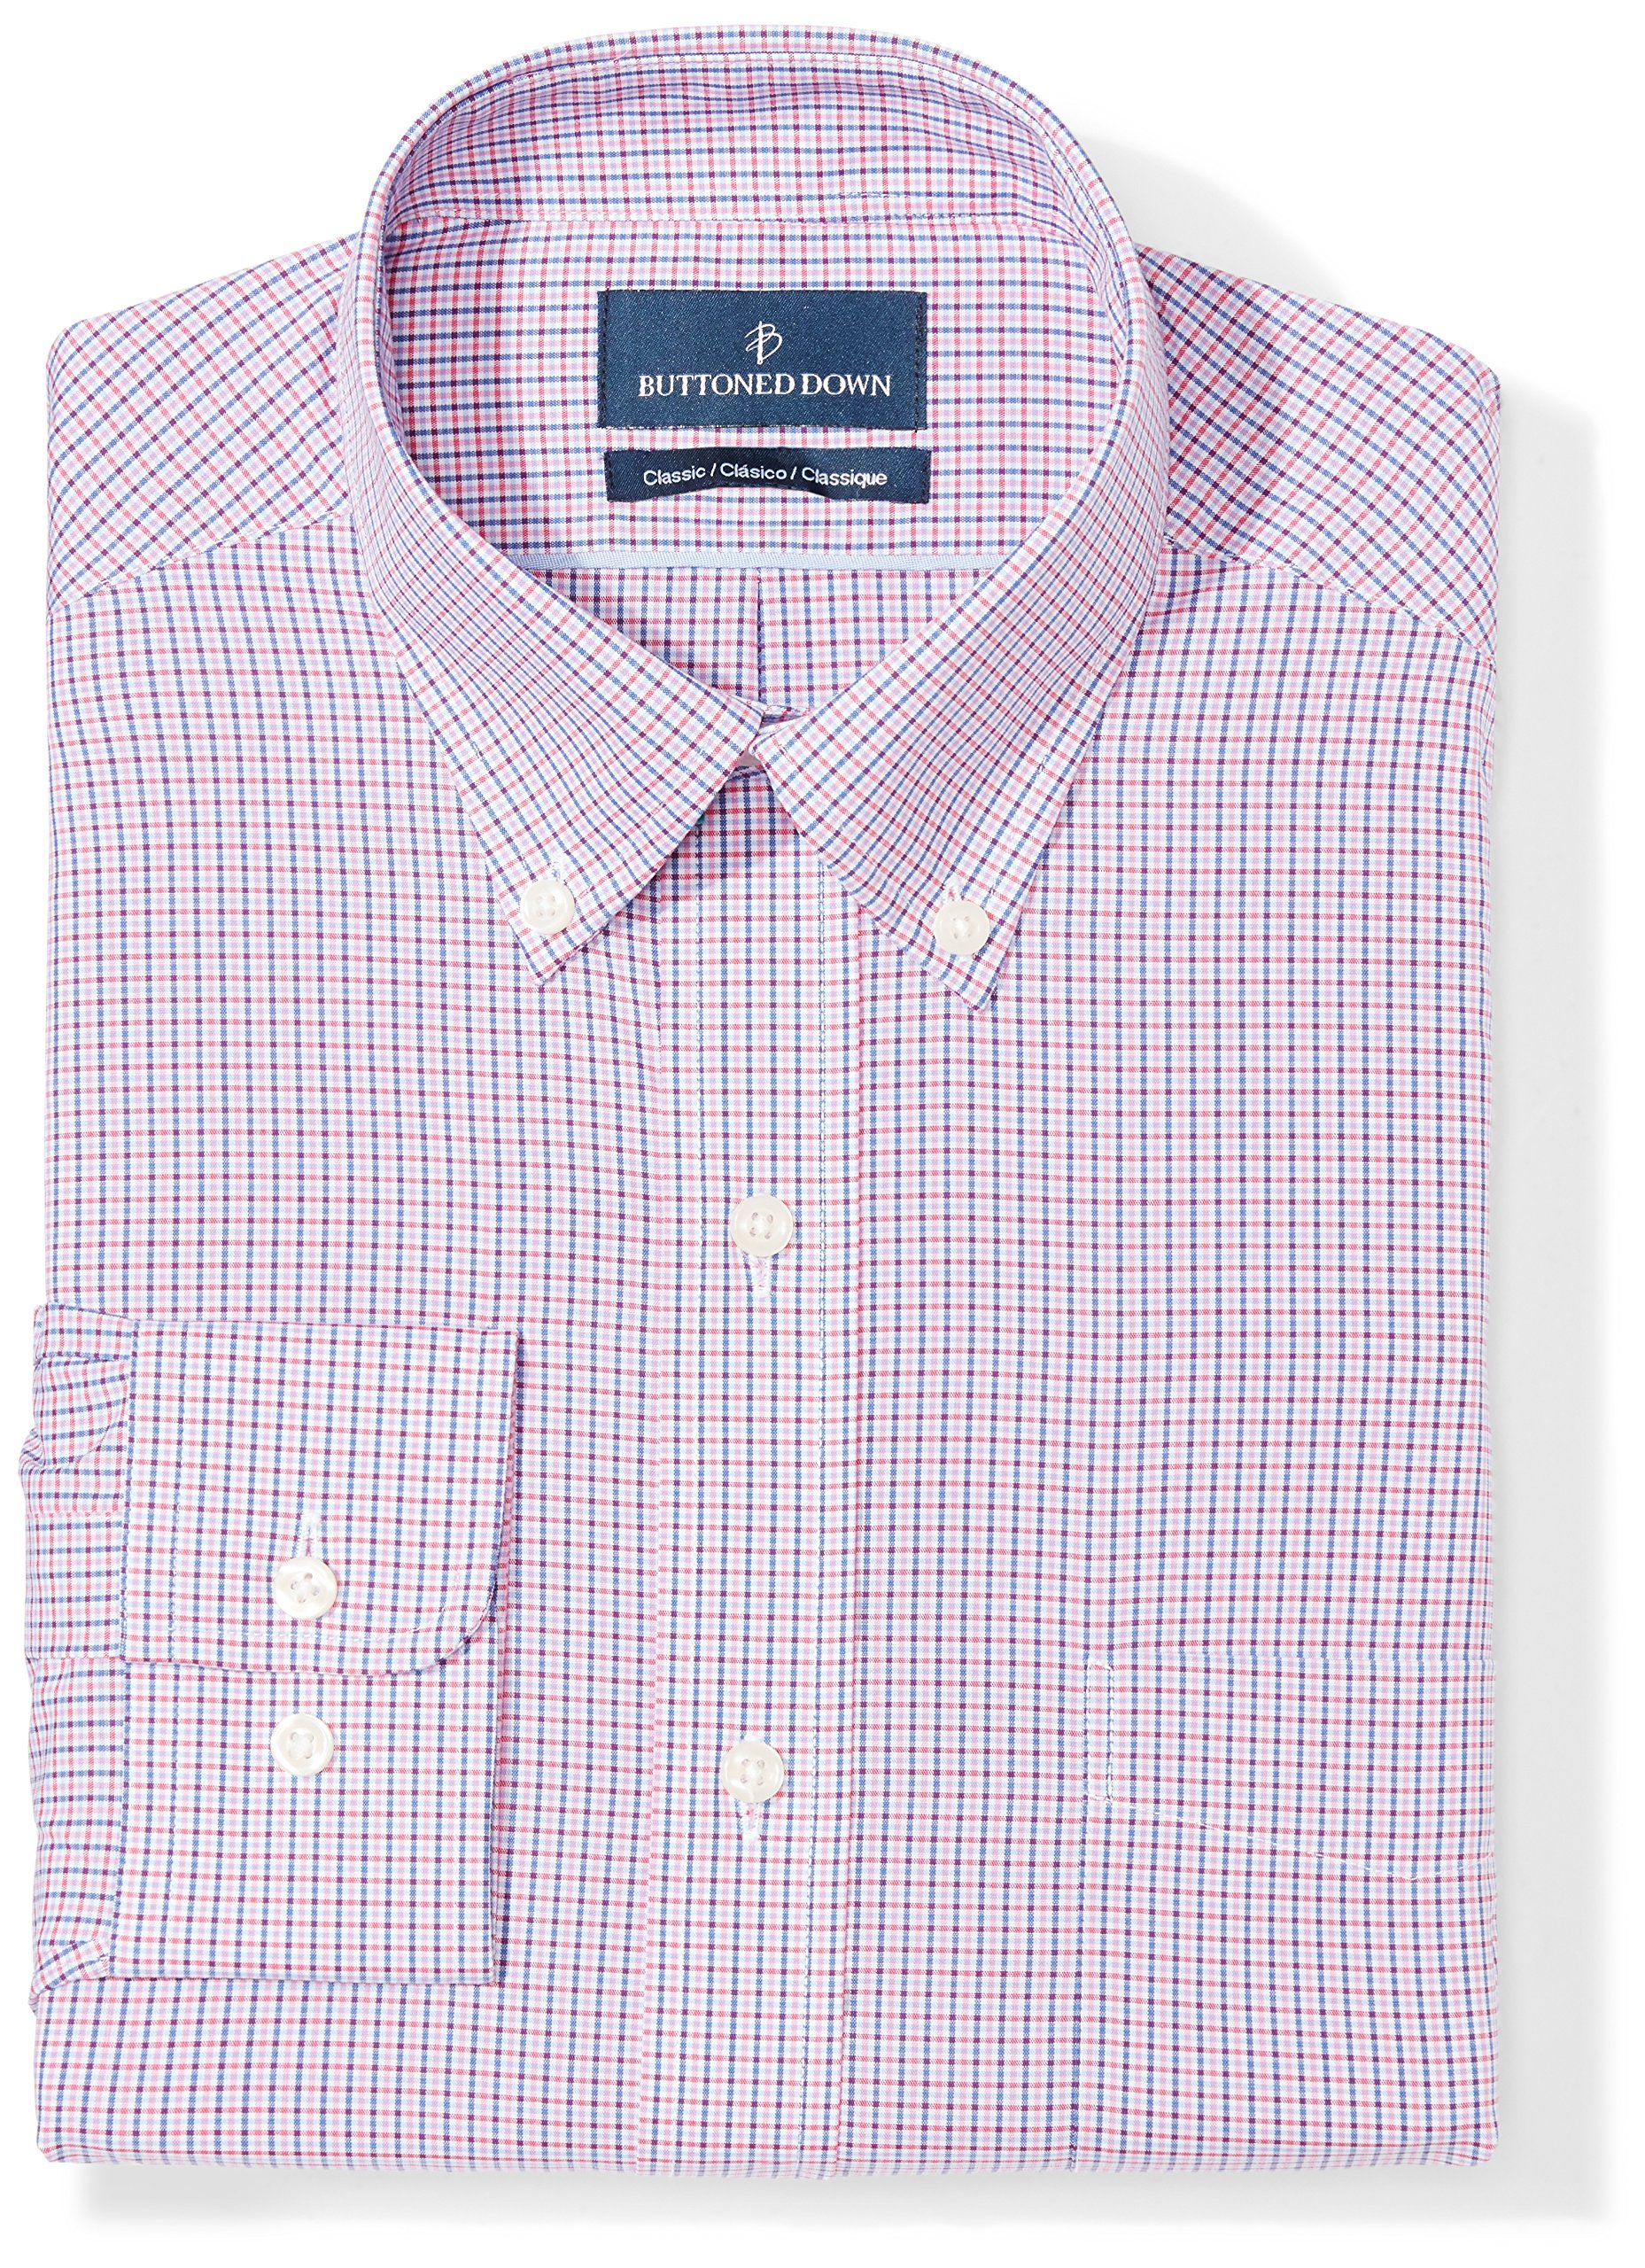 Buttoned Down Men's Classic Fit Button-Collar Pattern Non-Iron Dress Shirt, Berry/Red/Navy Tattersall Micro Check, 18'' Neck 35'' Sleeve (Big and Tall)